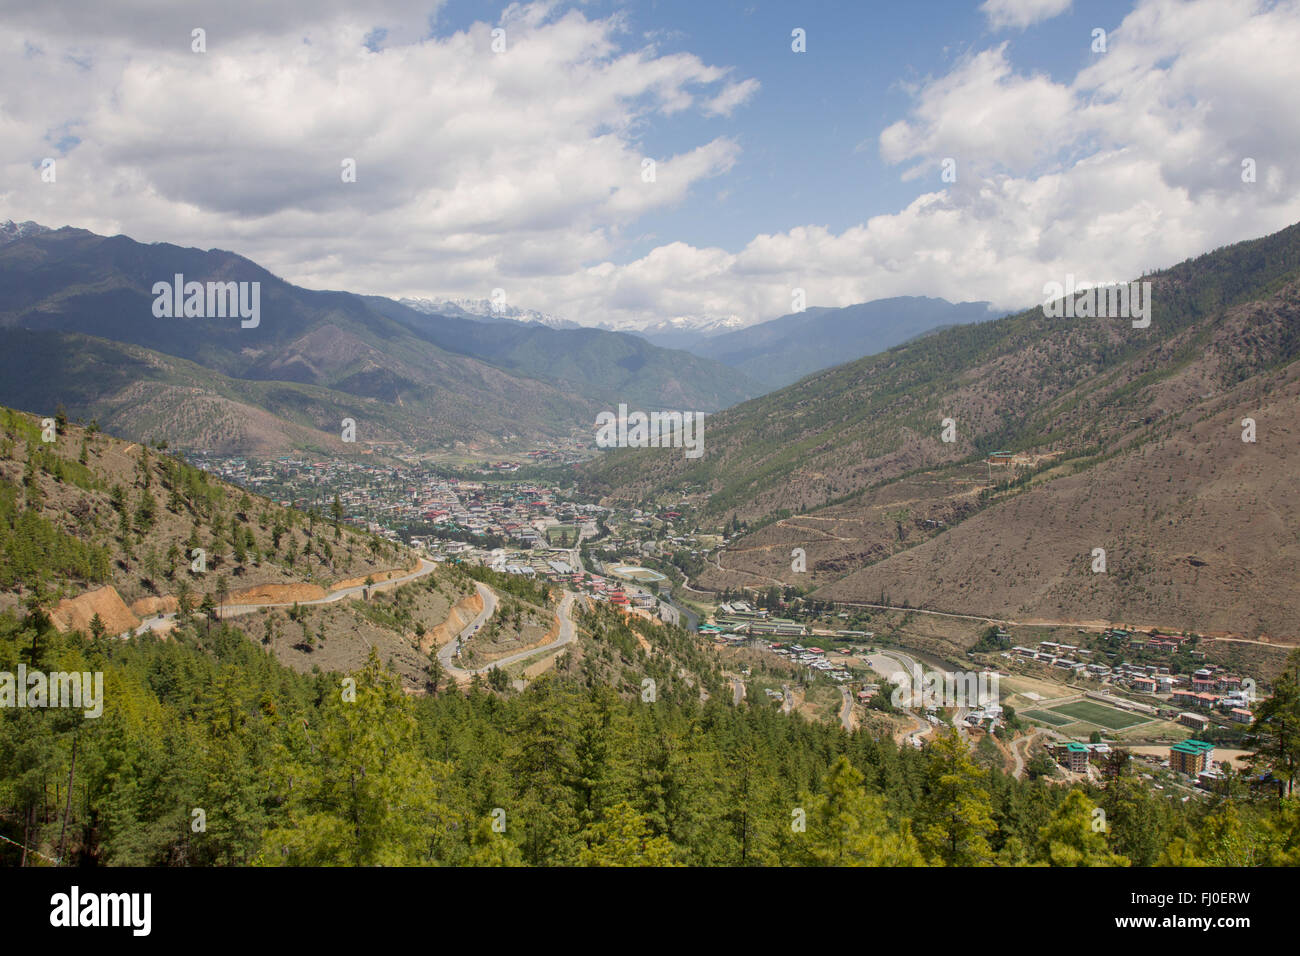 Vue sur Thimphu, capitale du Bhoutan Photo Stock